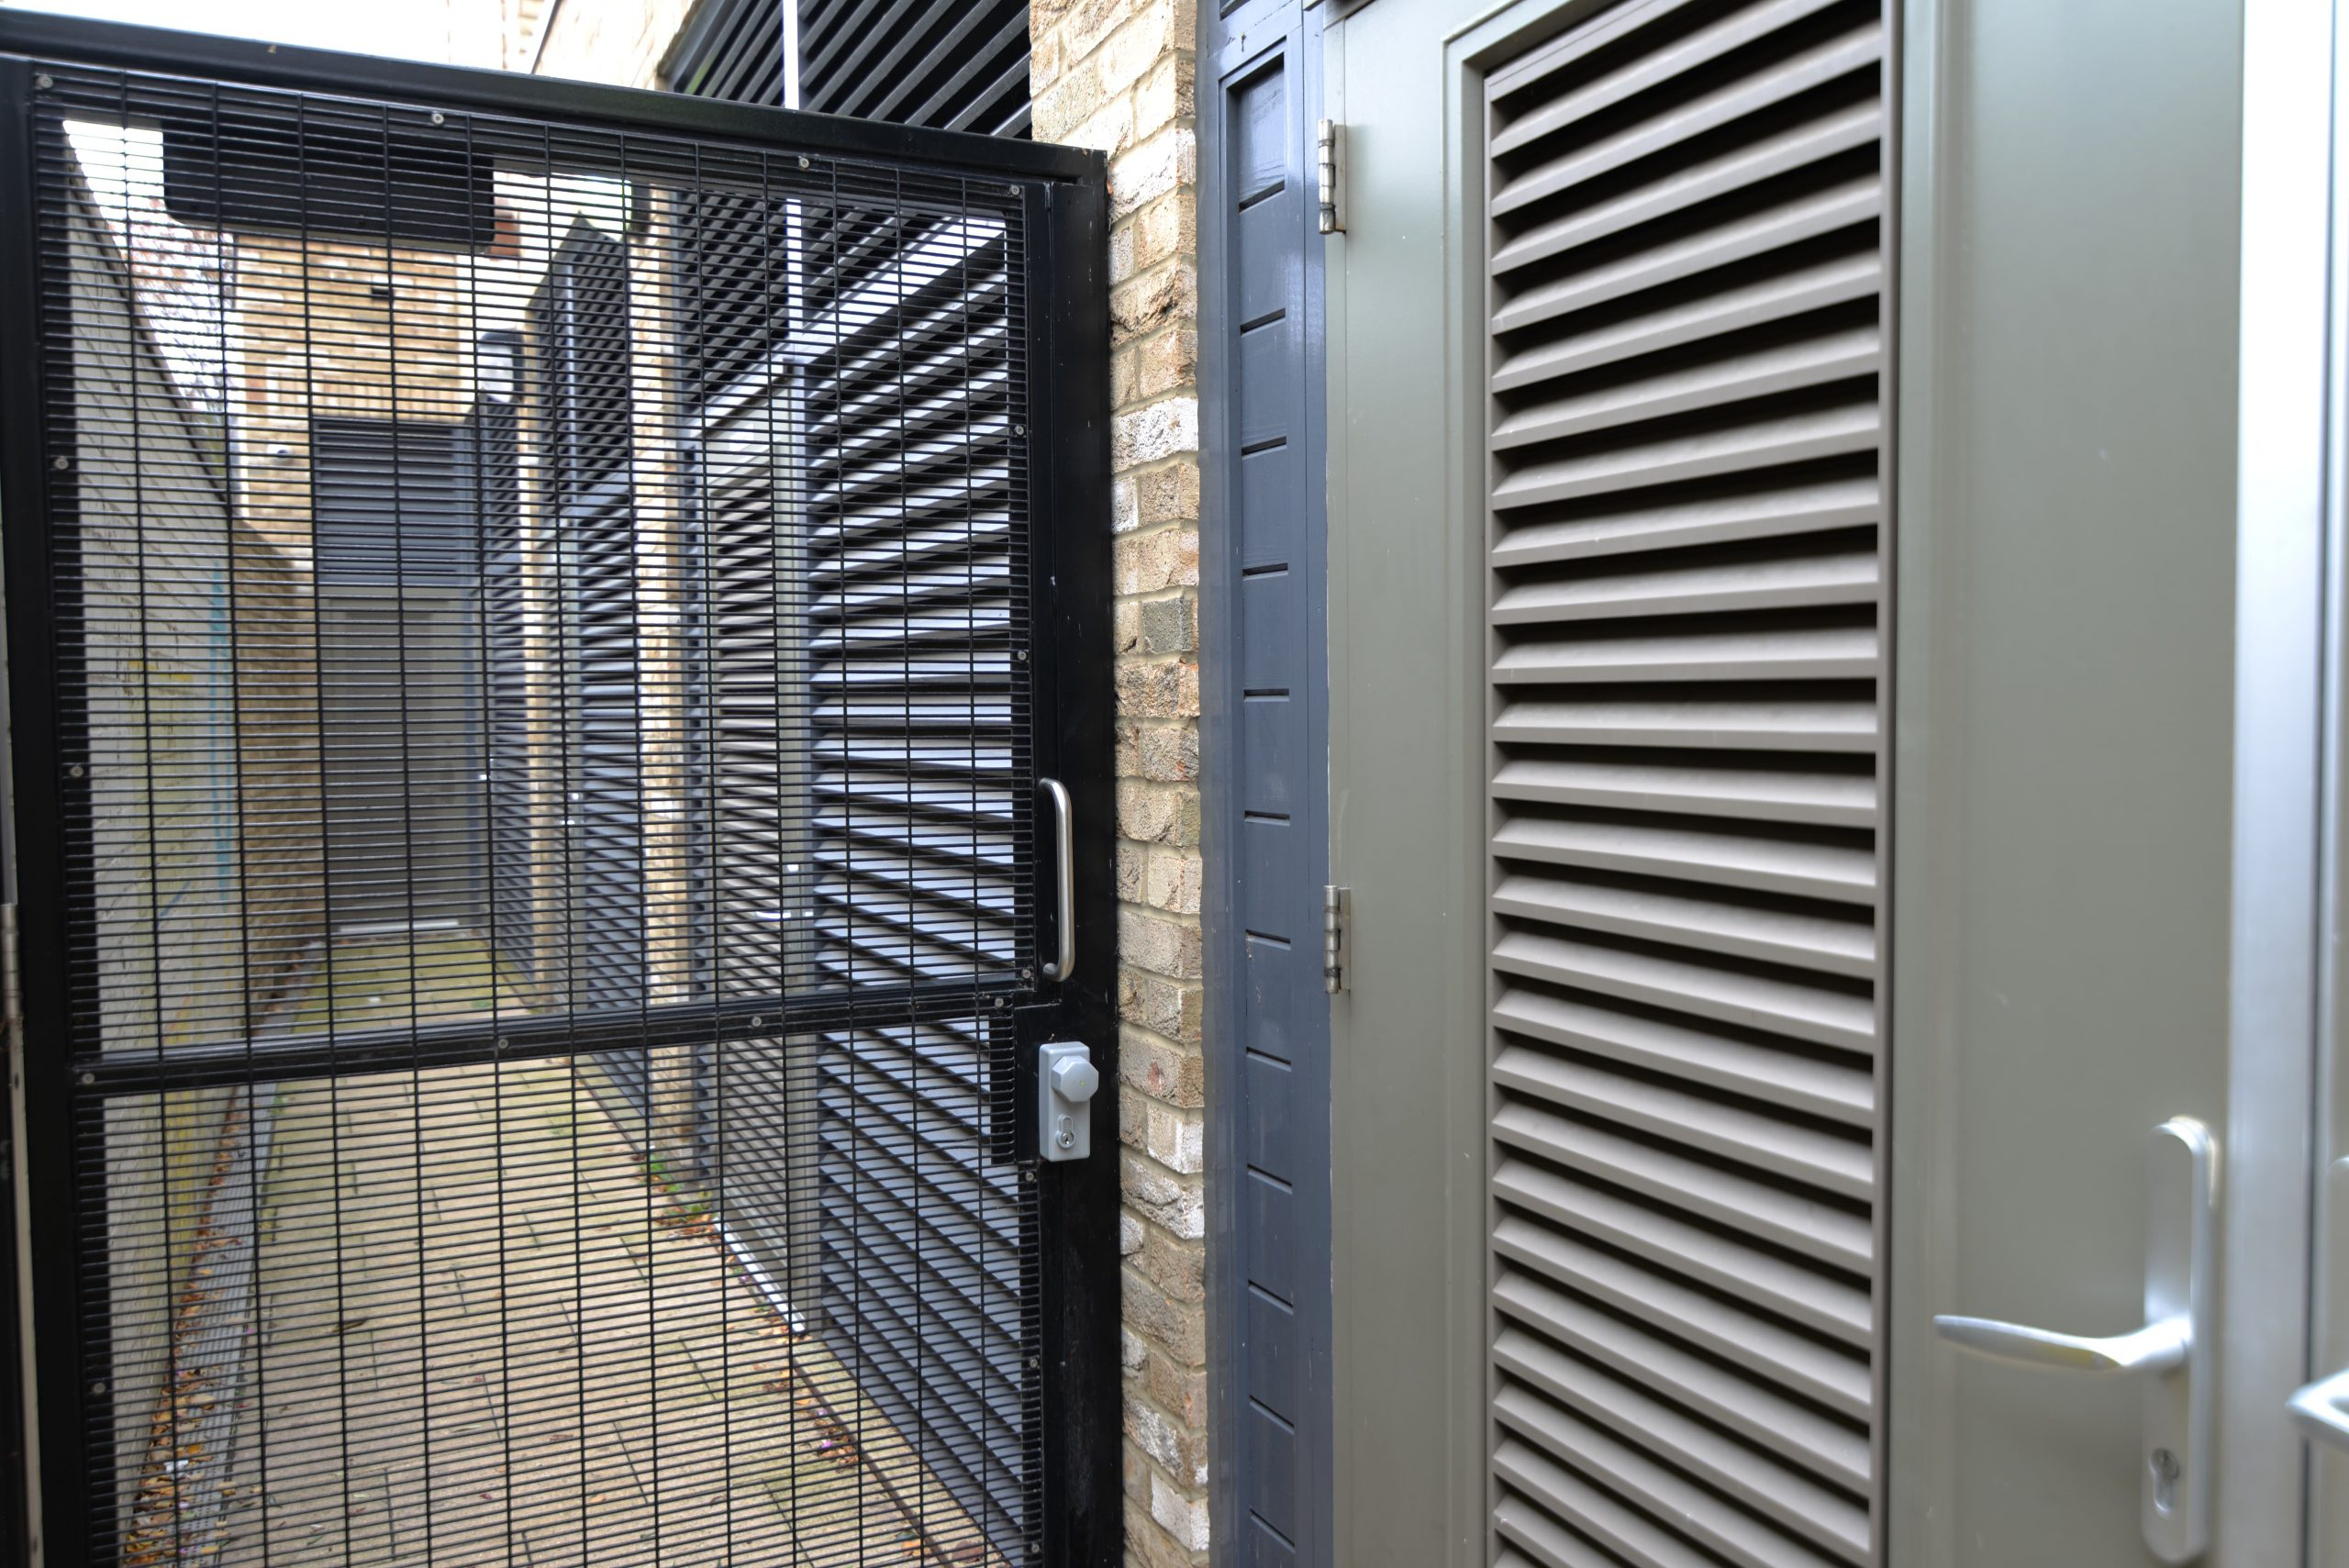 INDUSTRIAL STEEL LOUVERED DOORS AND GATES FABRICATED TO LPS1175 SR2 AND PAS24 STANDARD. PRODUCED AND INSTALLED BY PREMIER SECURITY CONSULTANTS LTD.